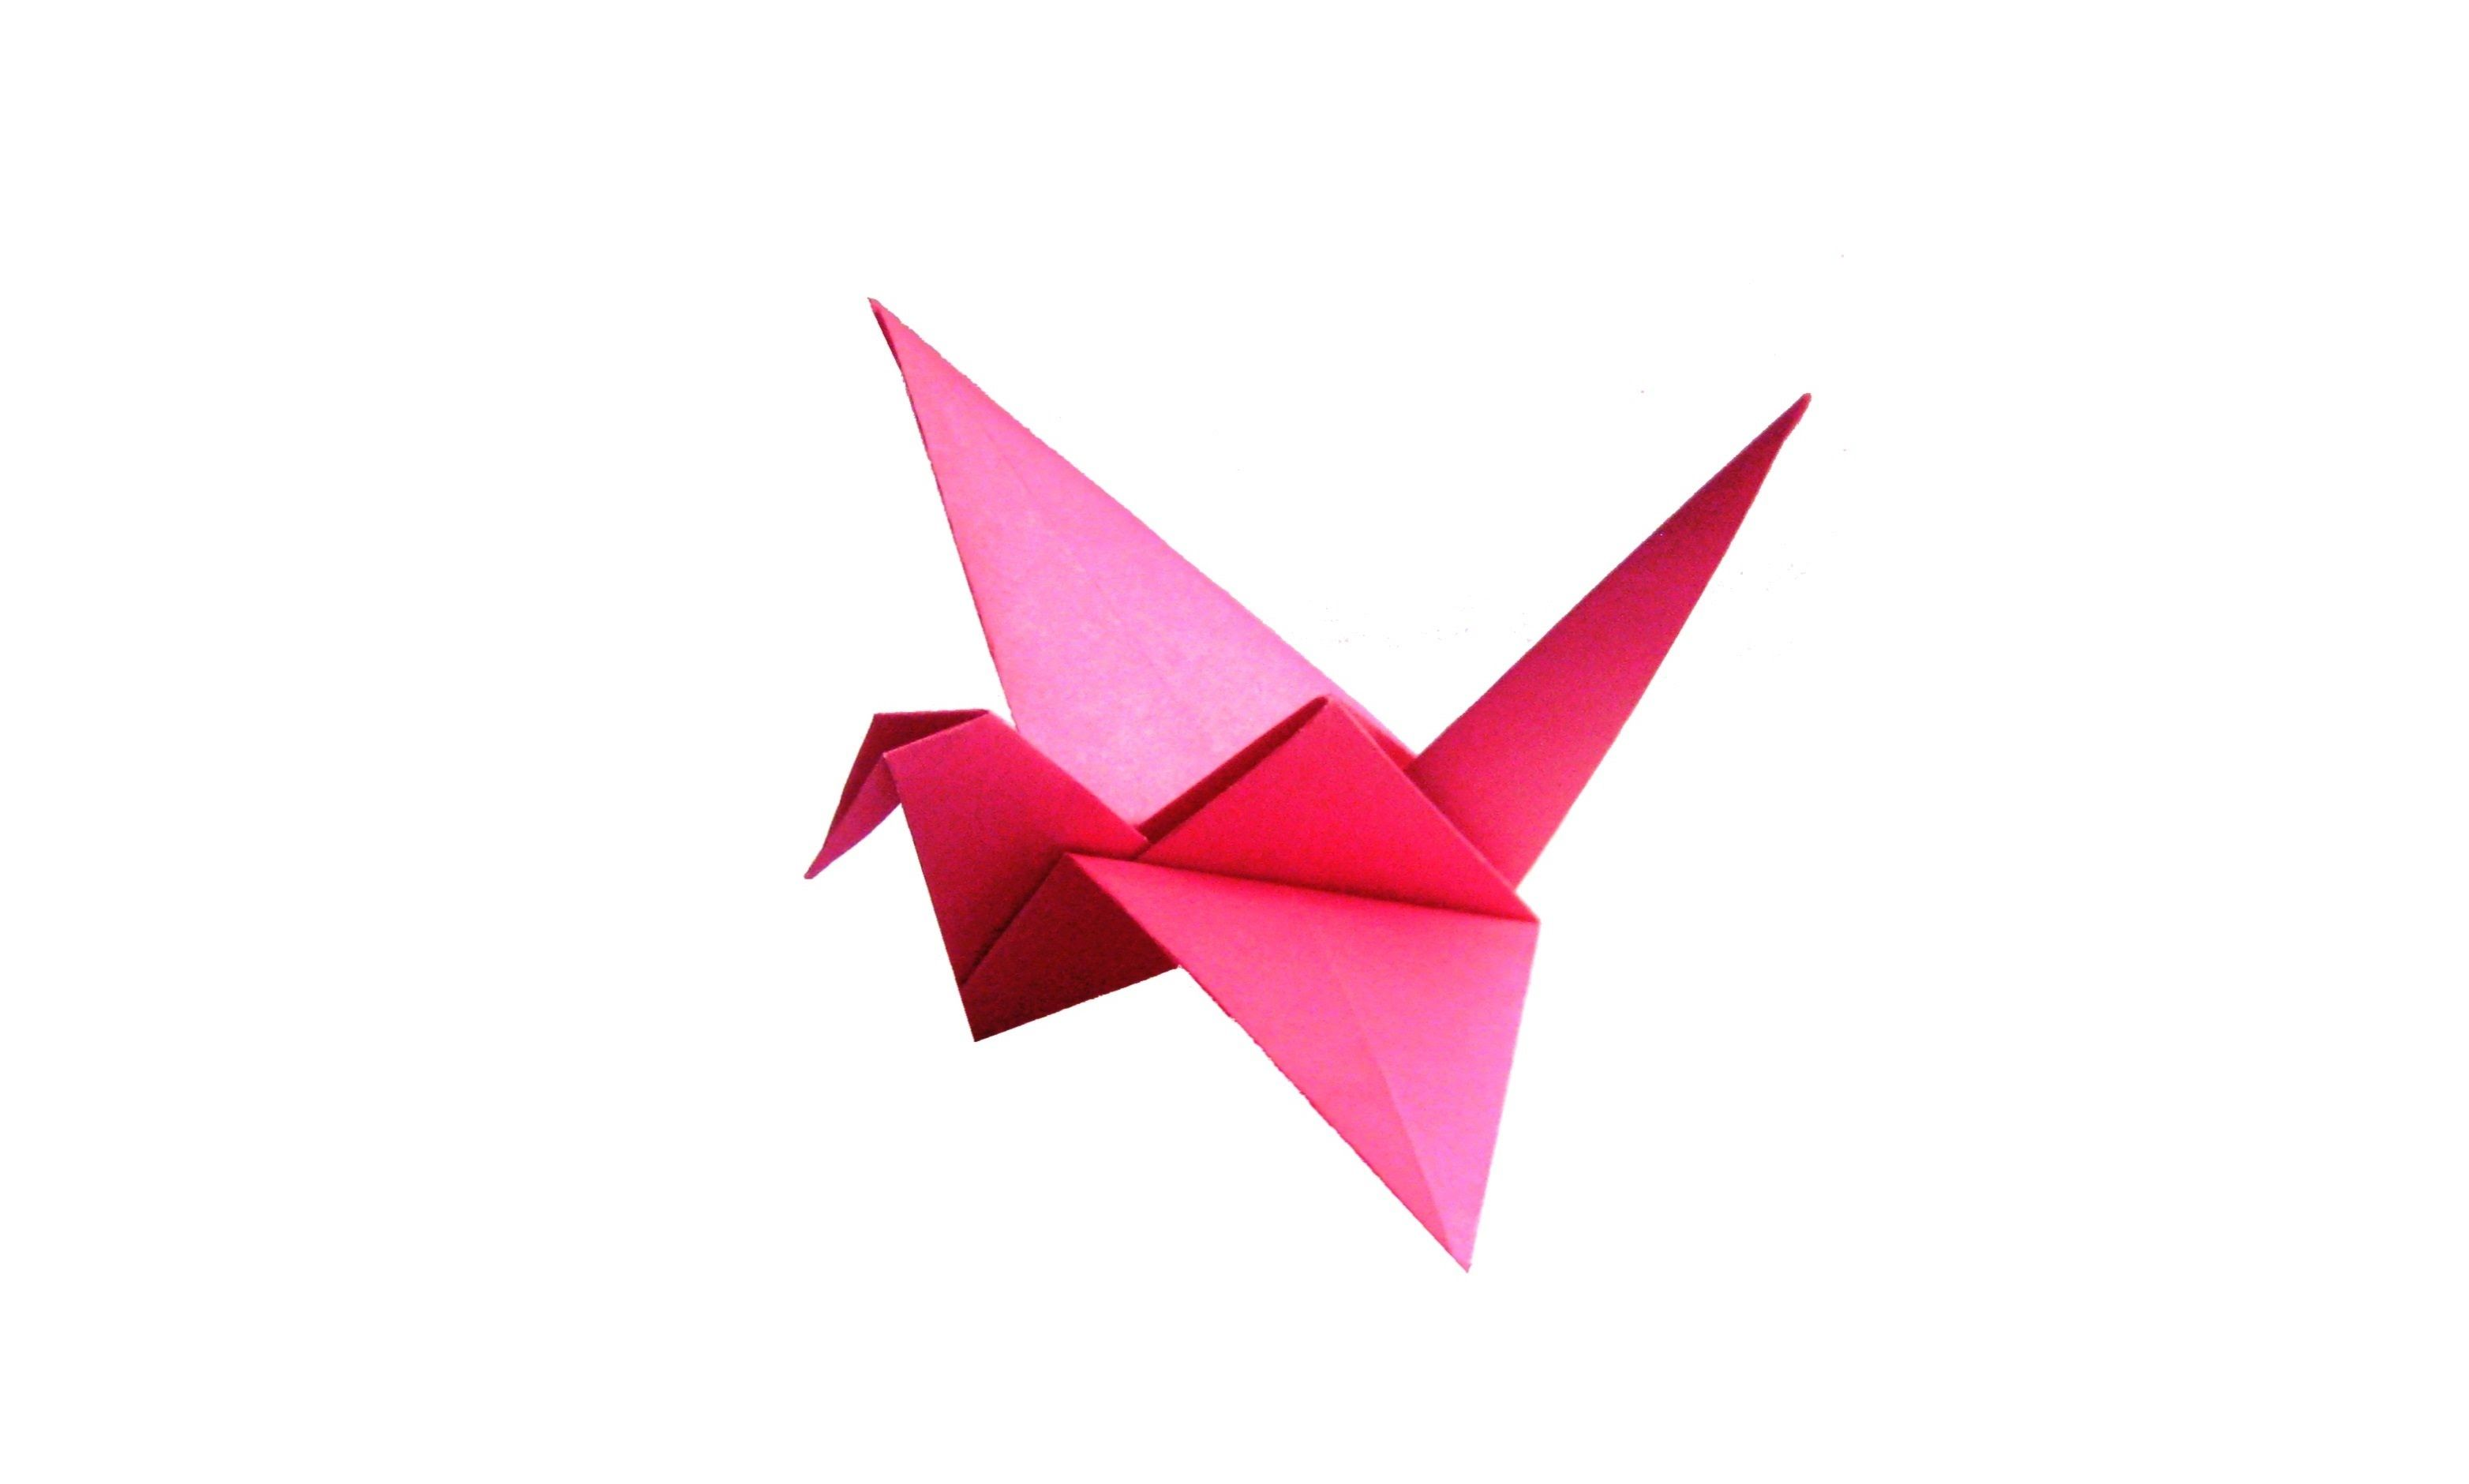 Origami flapping crane step by step | How to make a paper flapping ... | 1880x3128